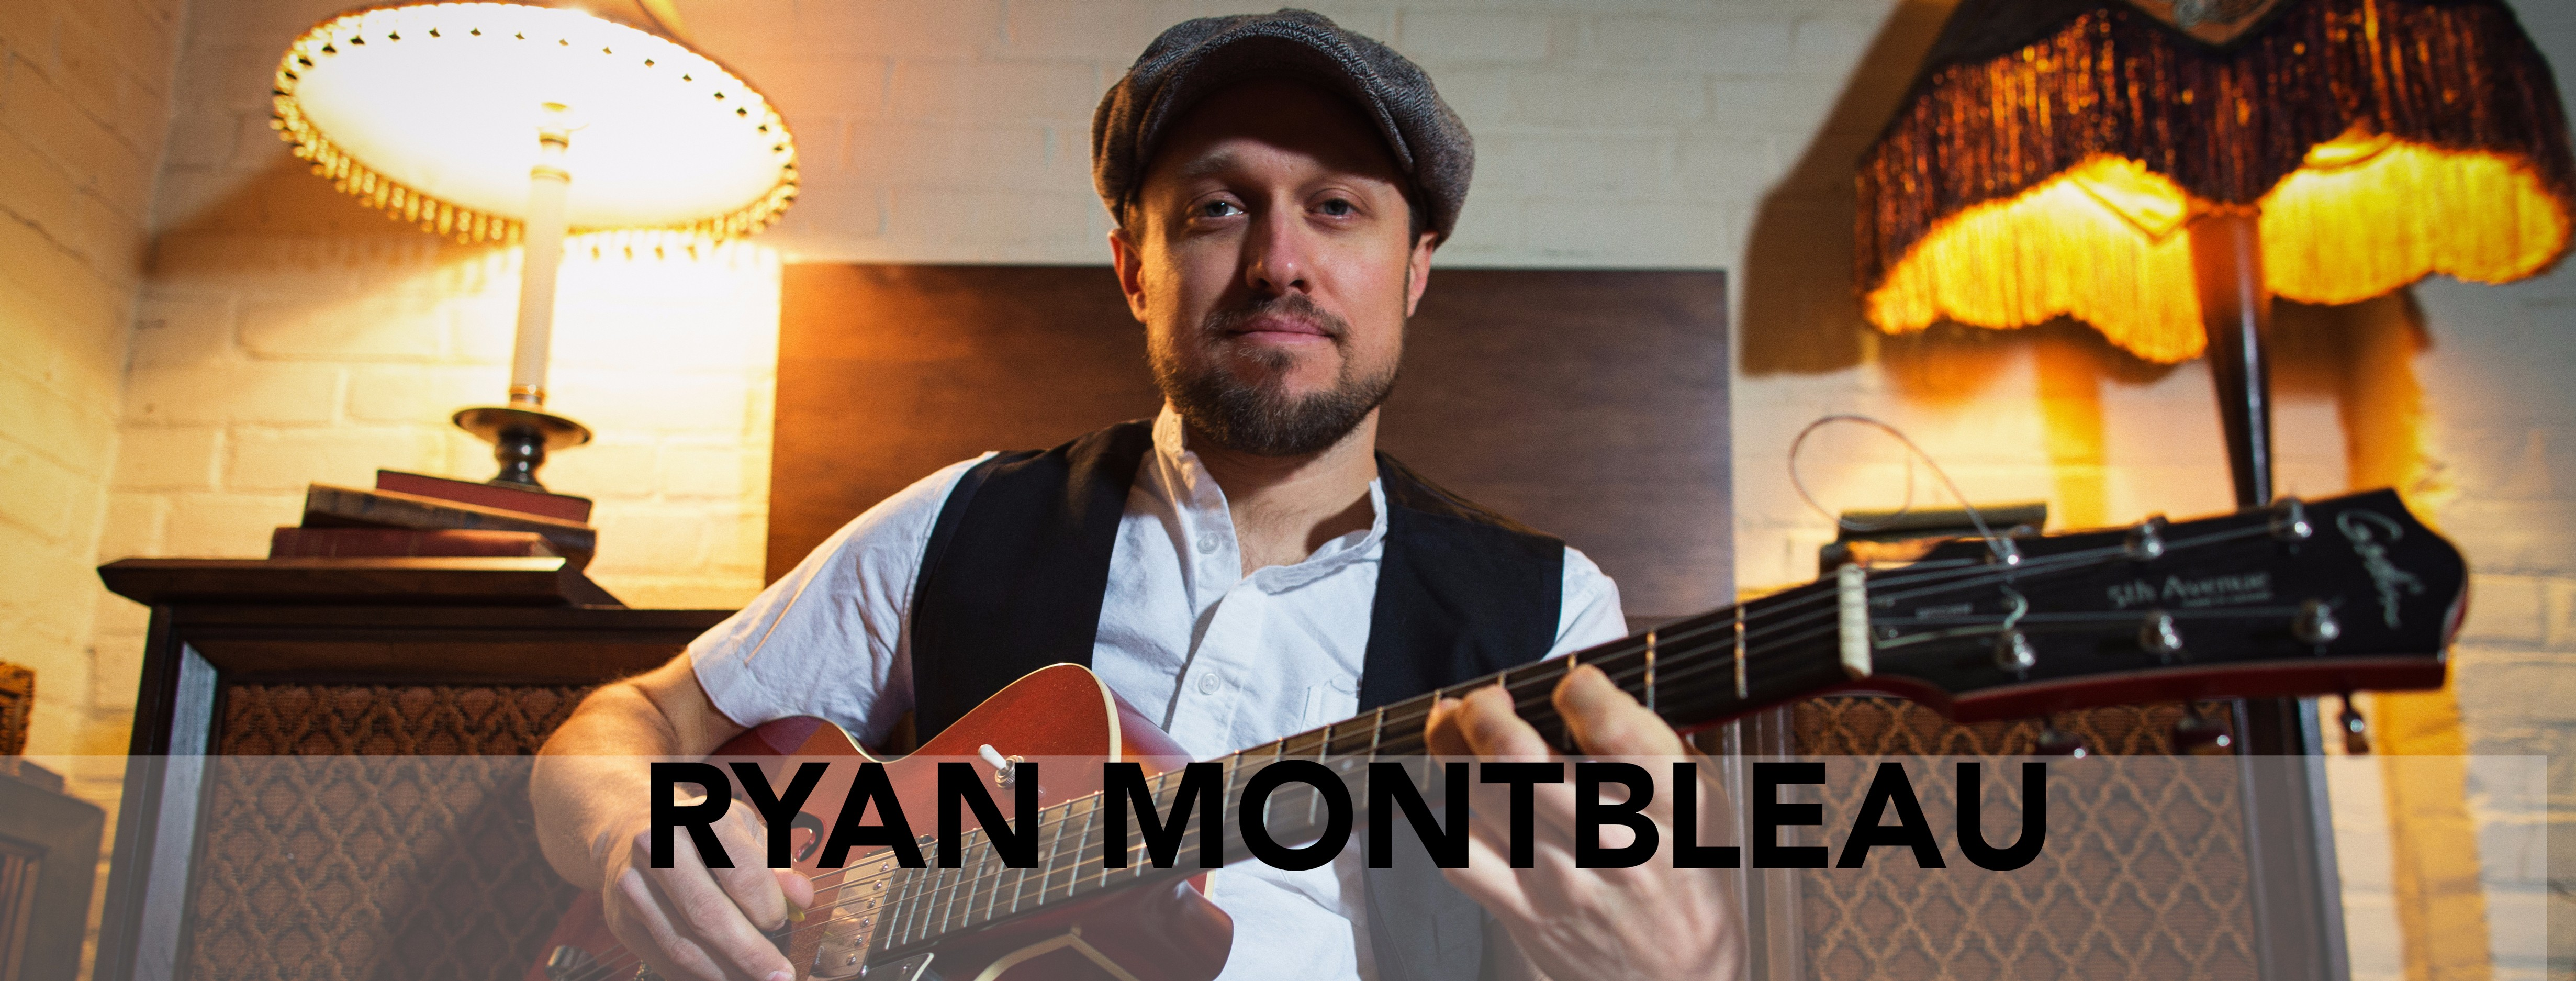 Ryan-Montblaue-Banner